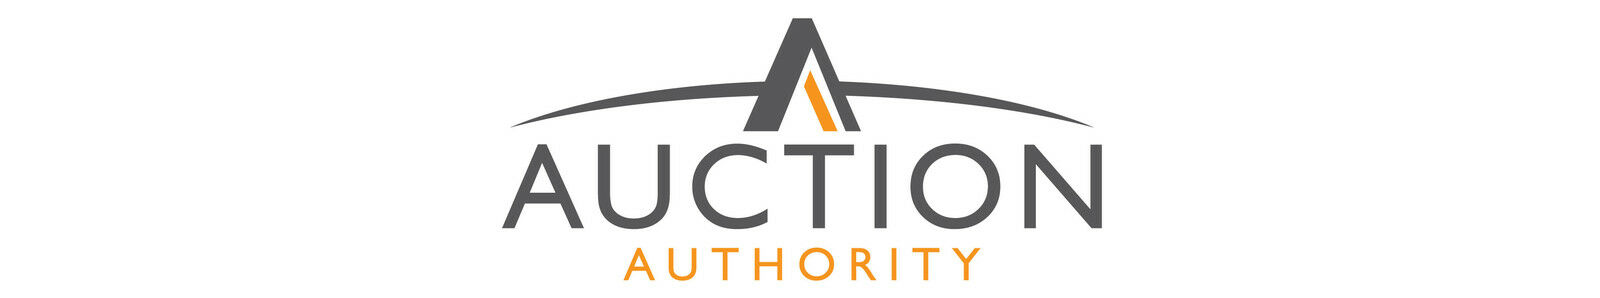 Auction Authority